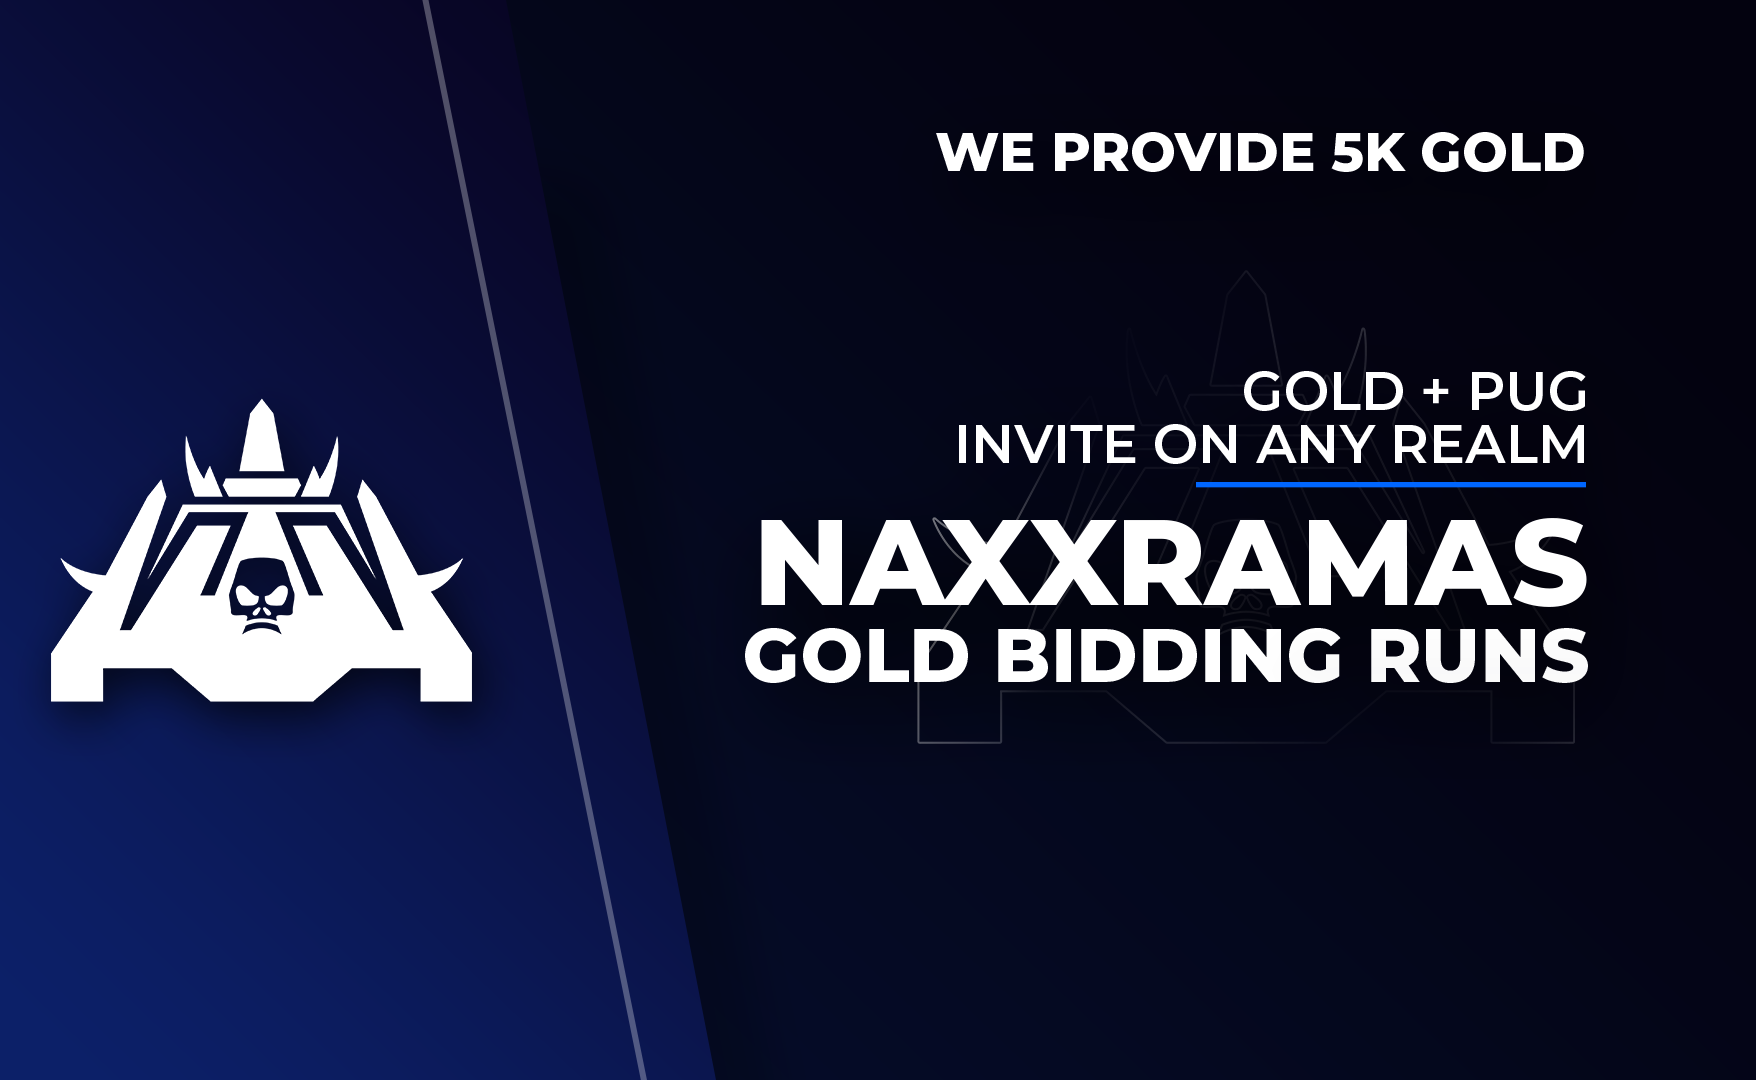 Naxxramas Gold Bid Run - 5000 Gold